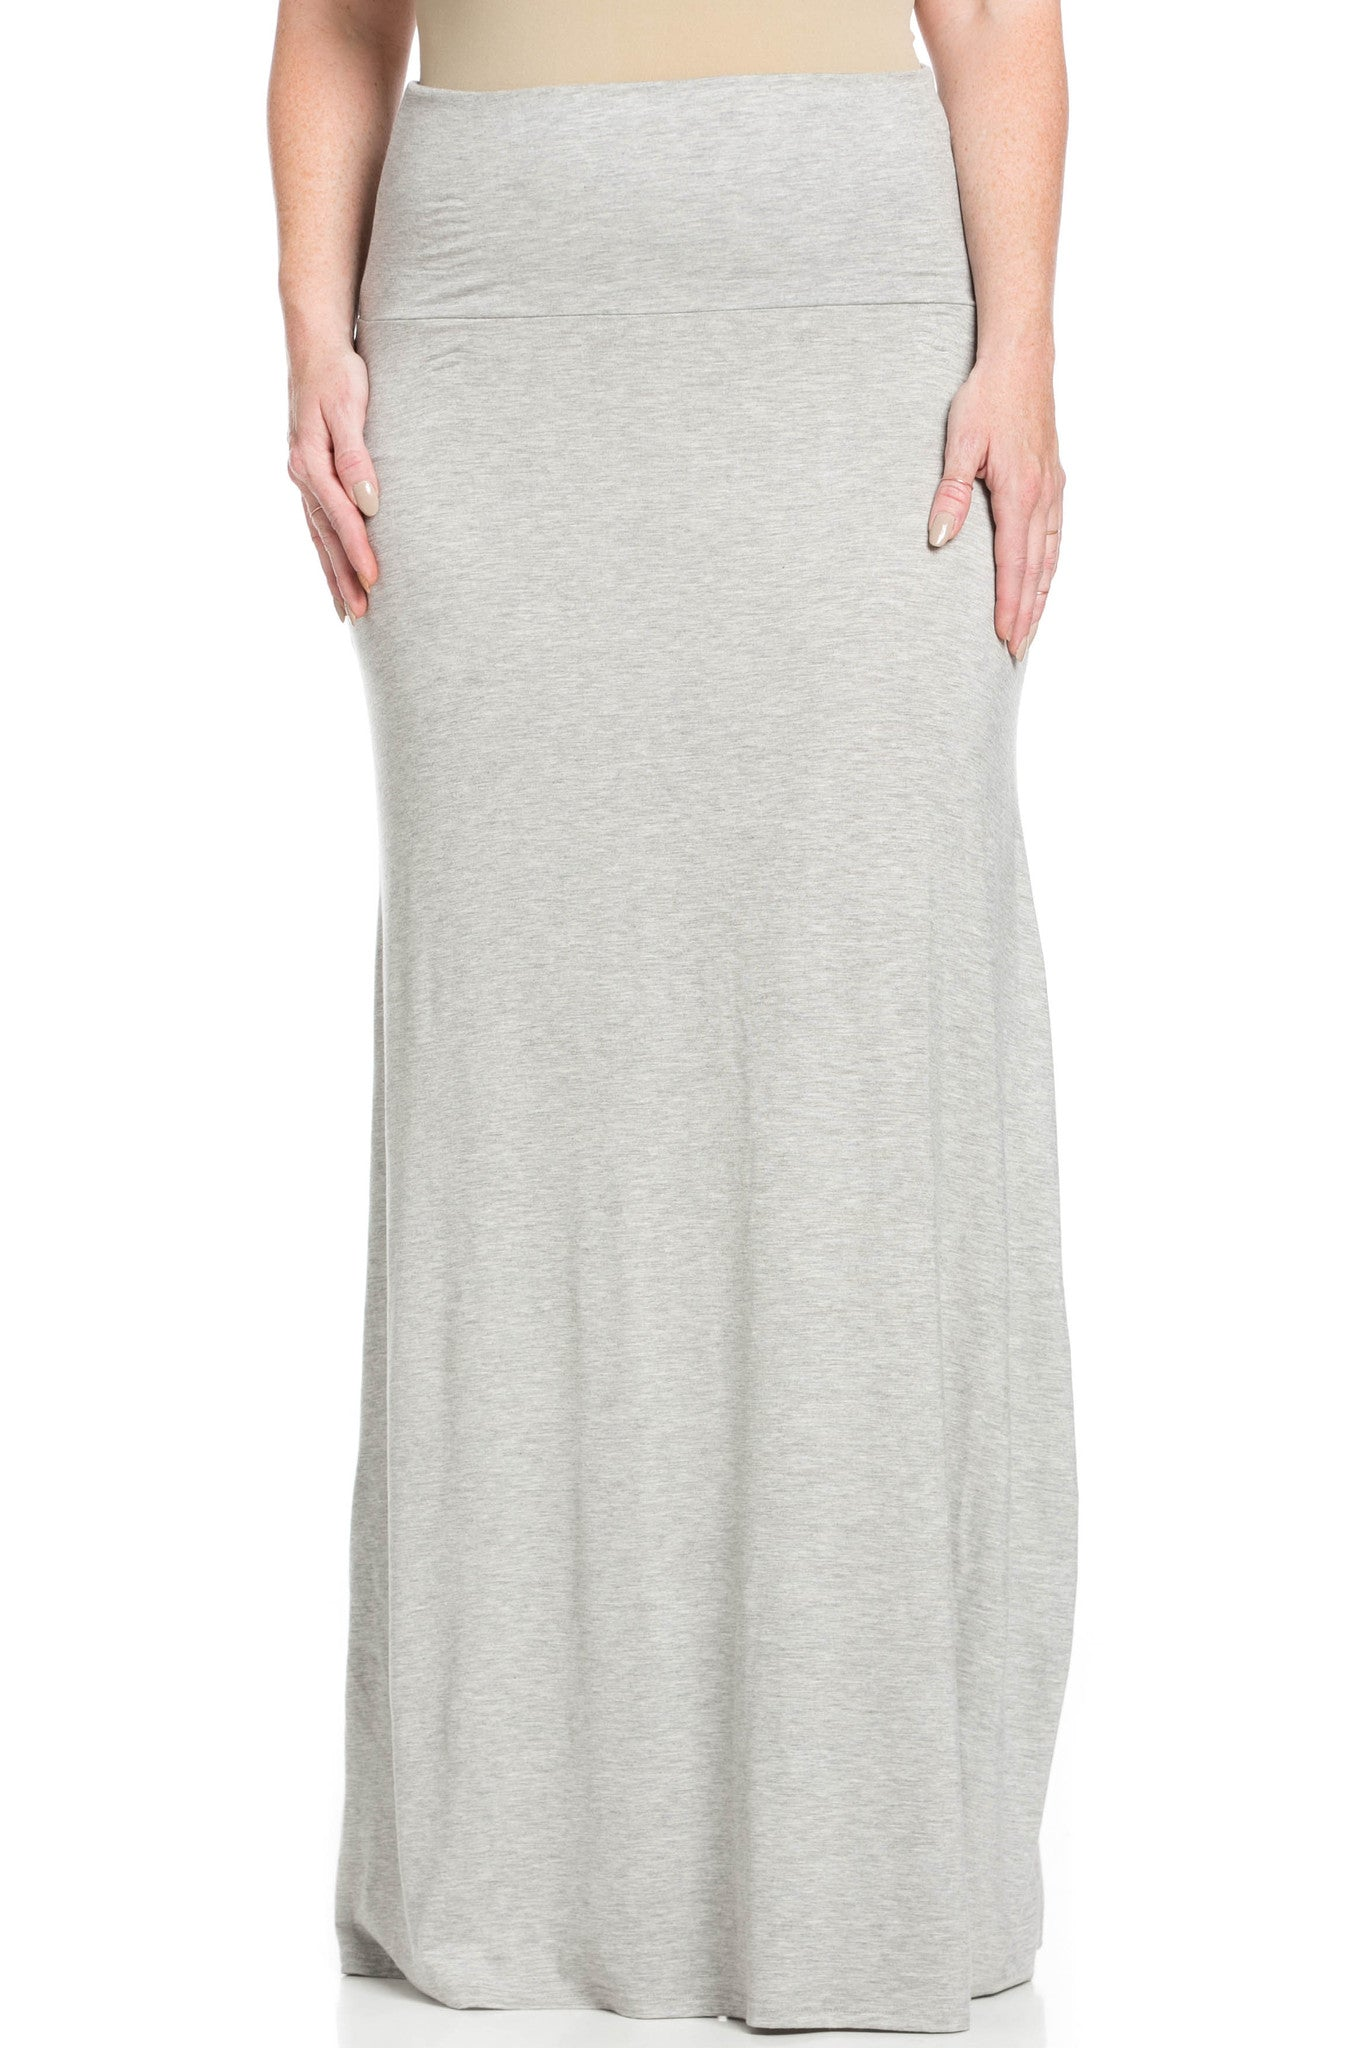 Fold Over Two-Way Maxi Skirt Heather Grey - Skirts - My Yuccie - 8